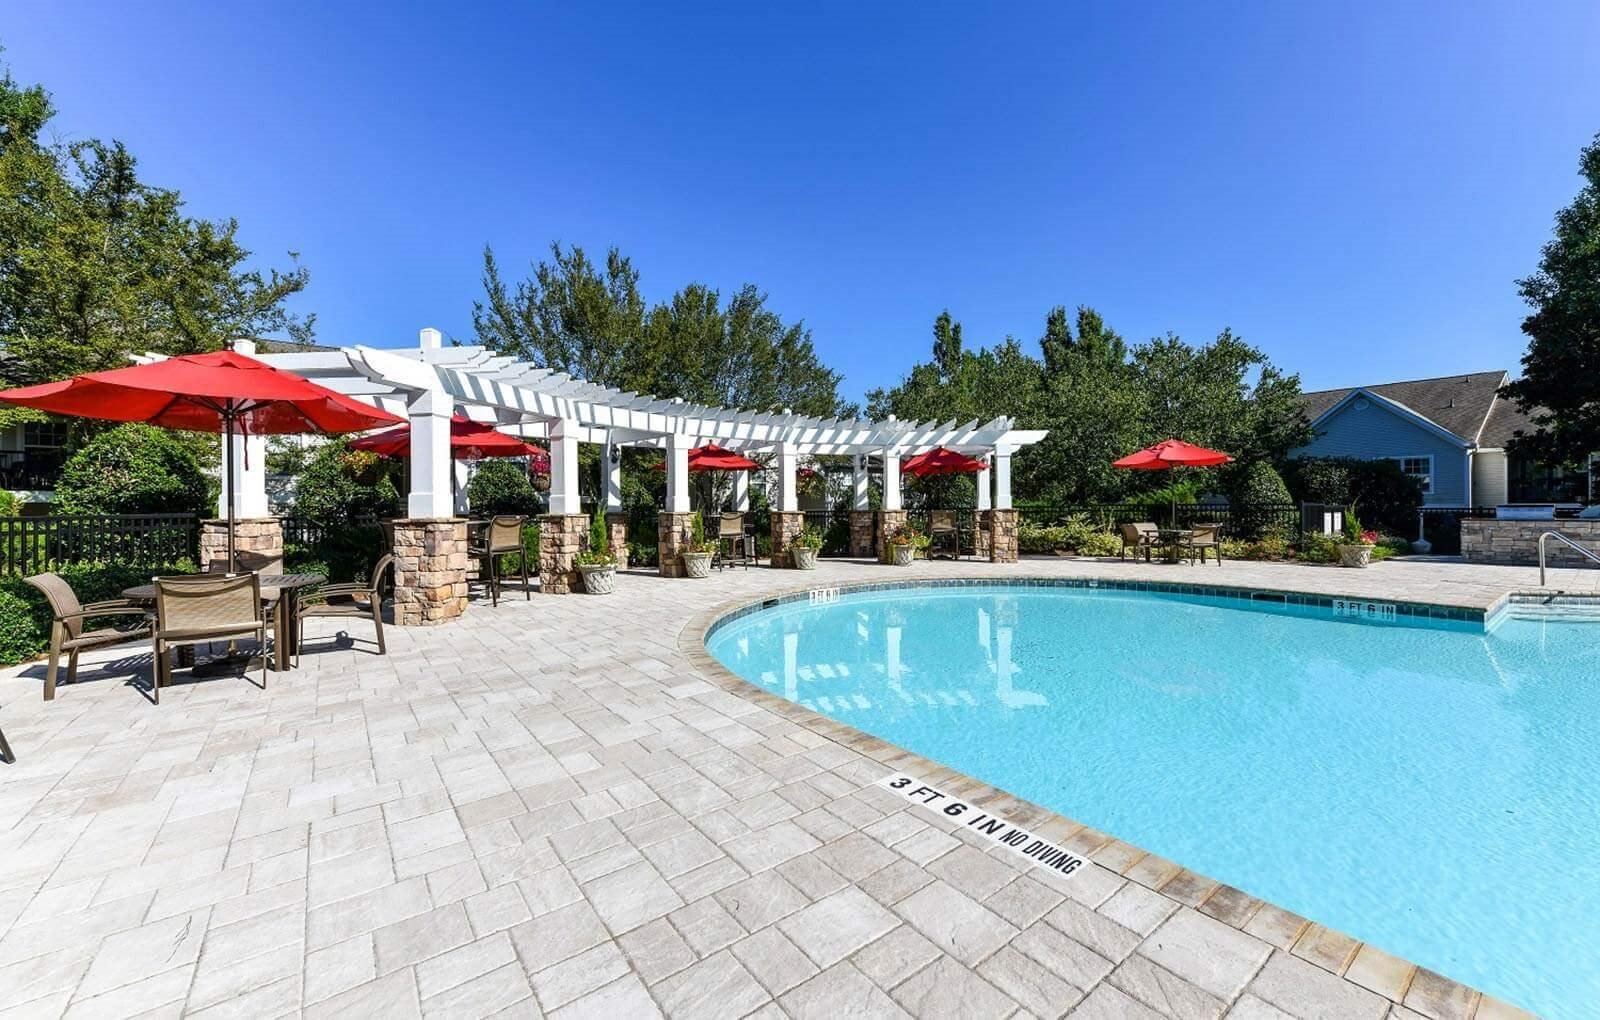 Refreshing Swimming Pool with Relaxing Poolside Cabanas at Lake Cameron Apartment Homes, Apex, NC 27523